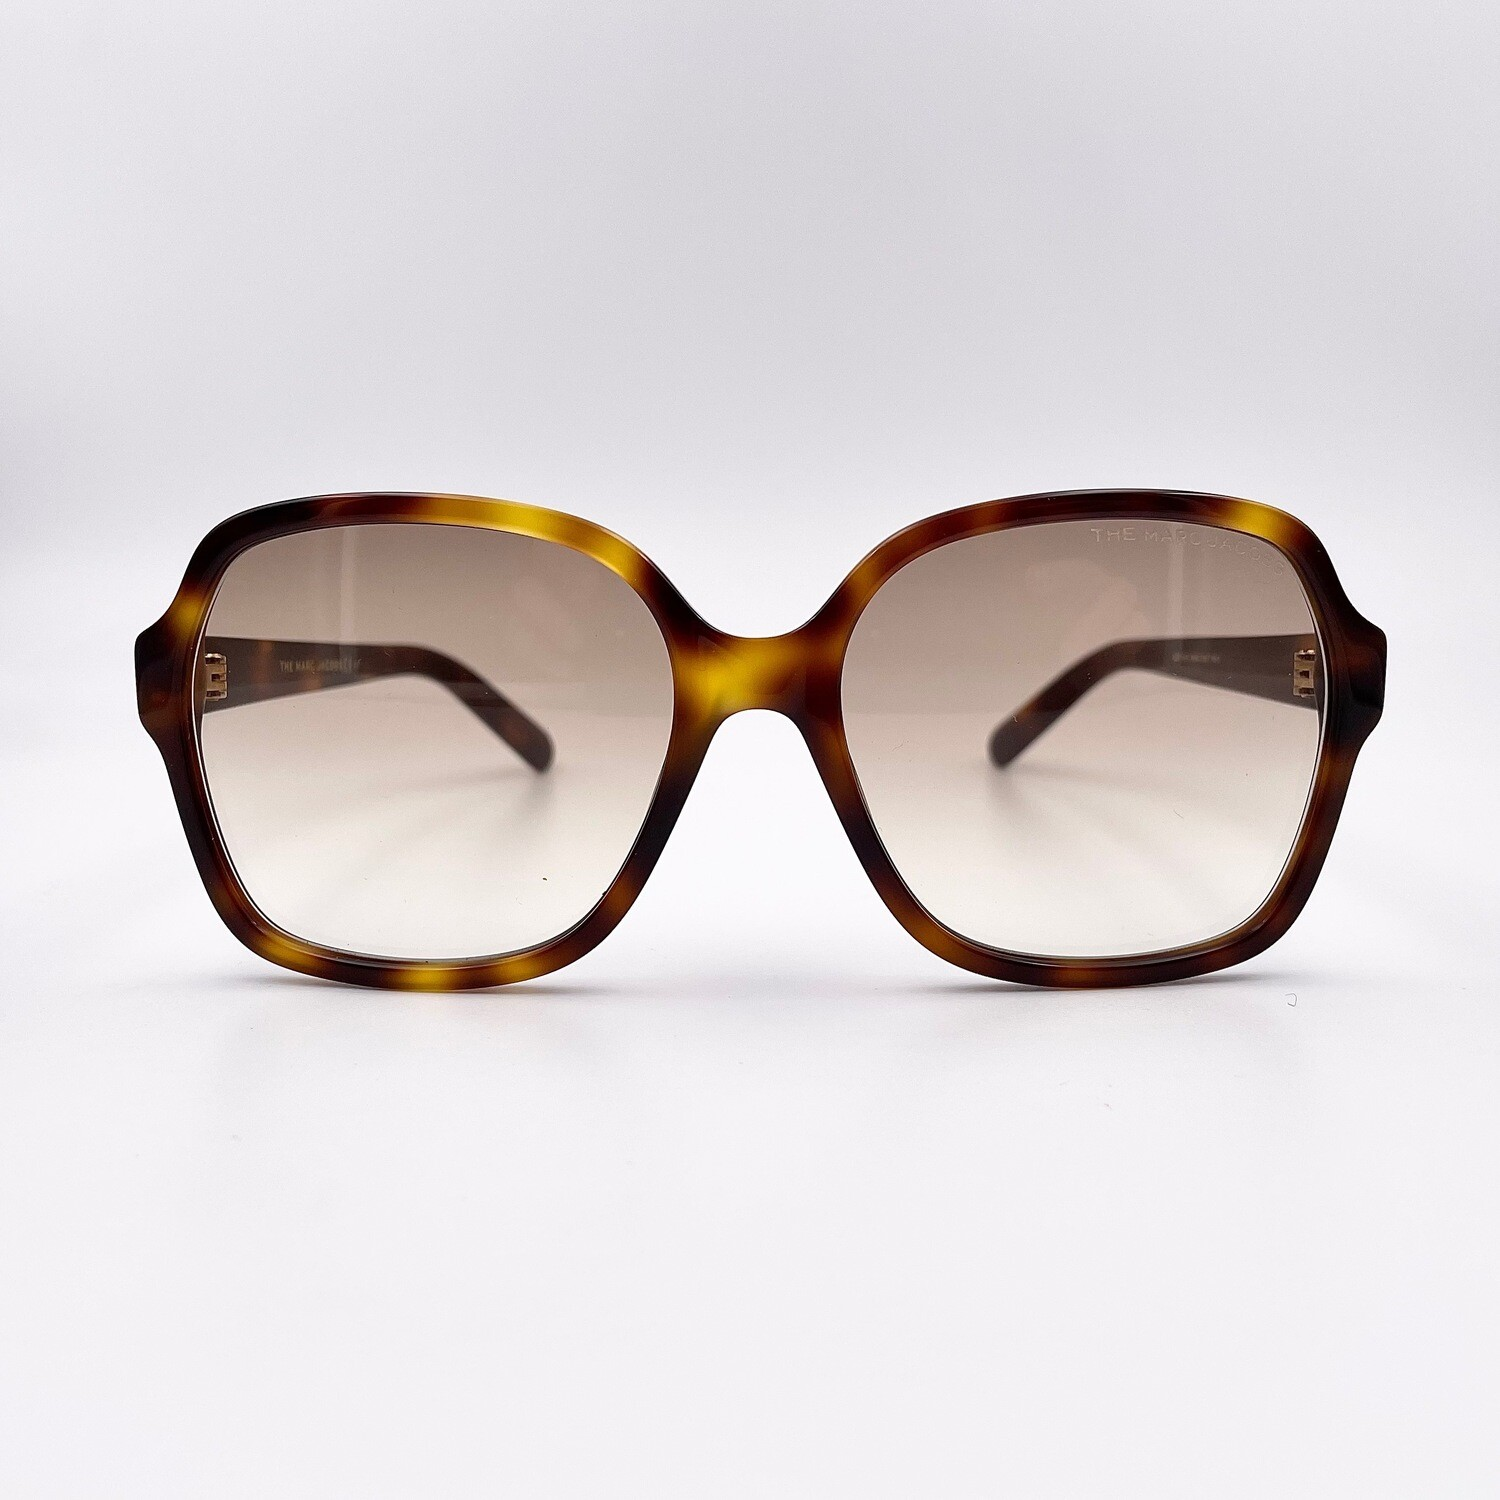 Occhiale da sole donna in acetato tartarugato Marc Jacobs - 526/s